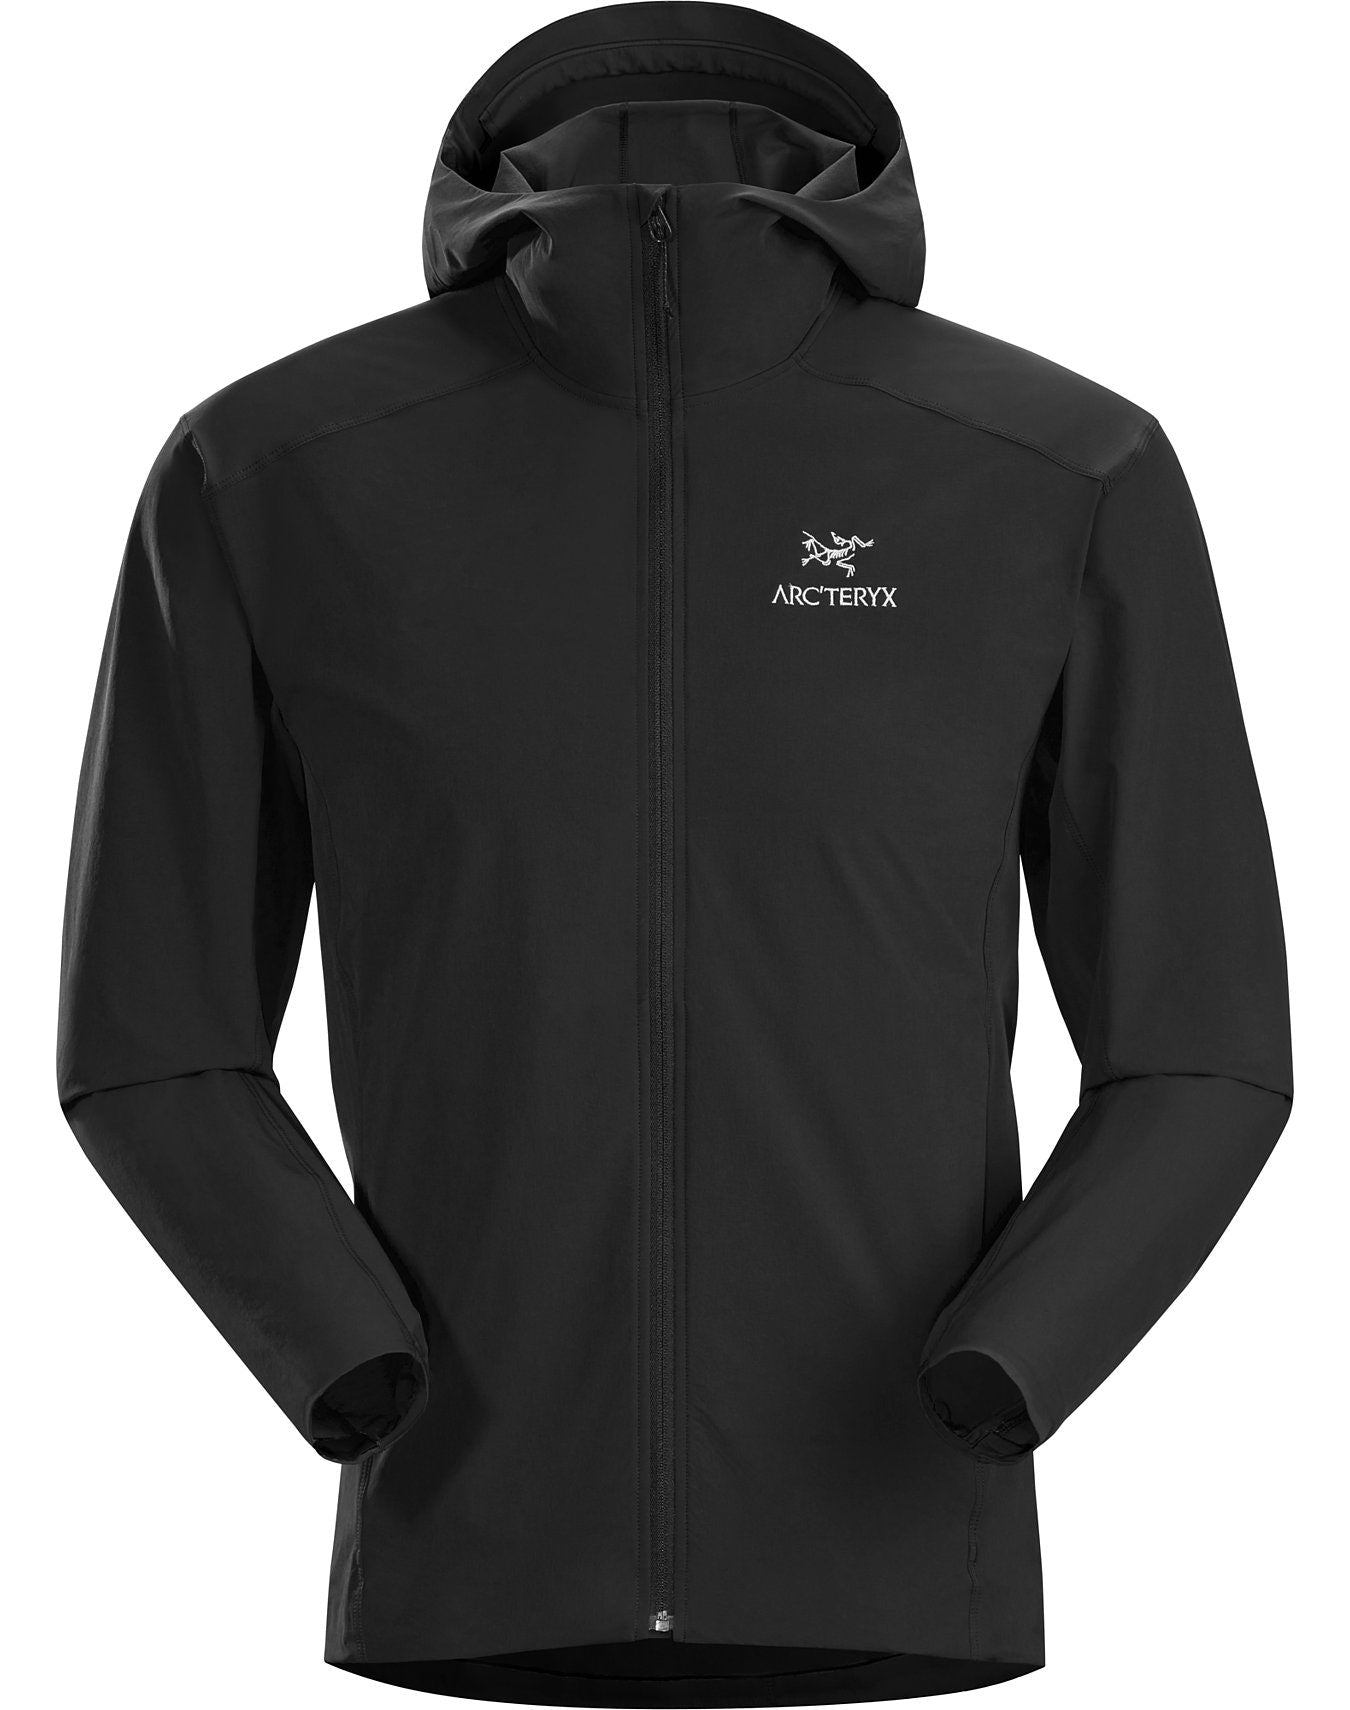 ARC'TERYX M'S WINDBREAKERS BLACK XL GAMMA SL HOODY